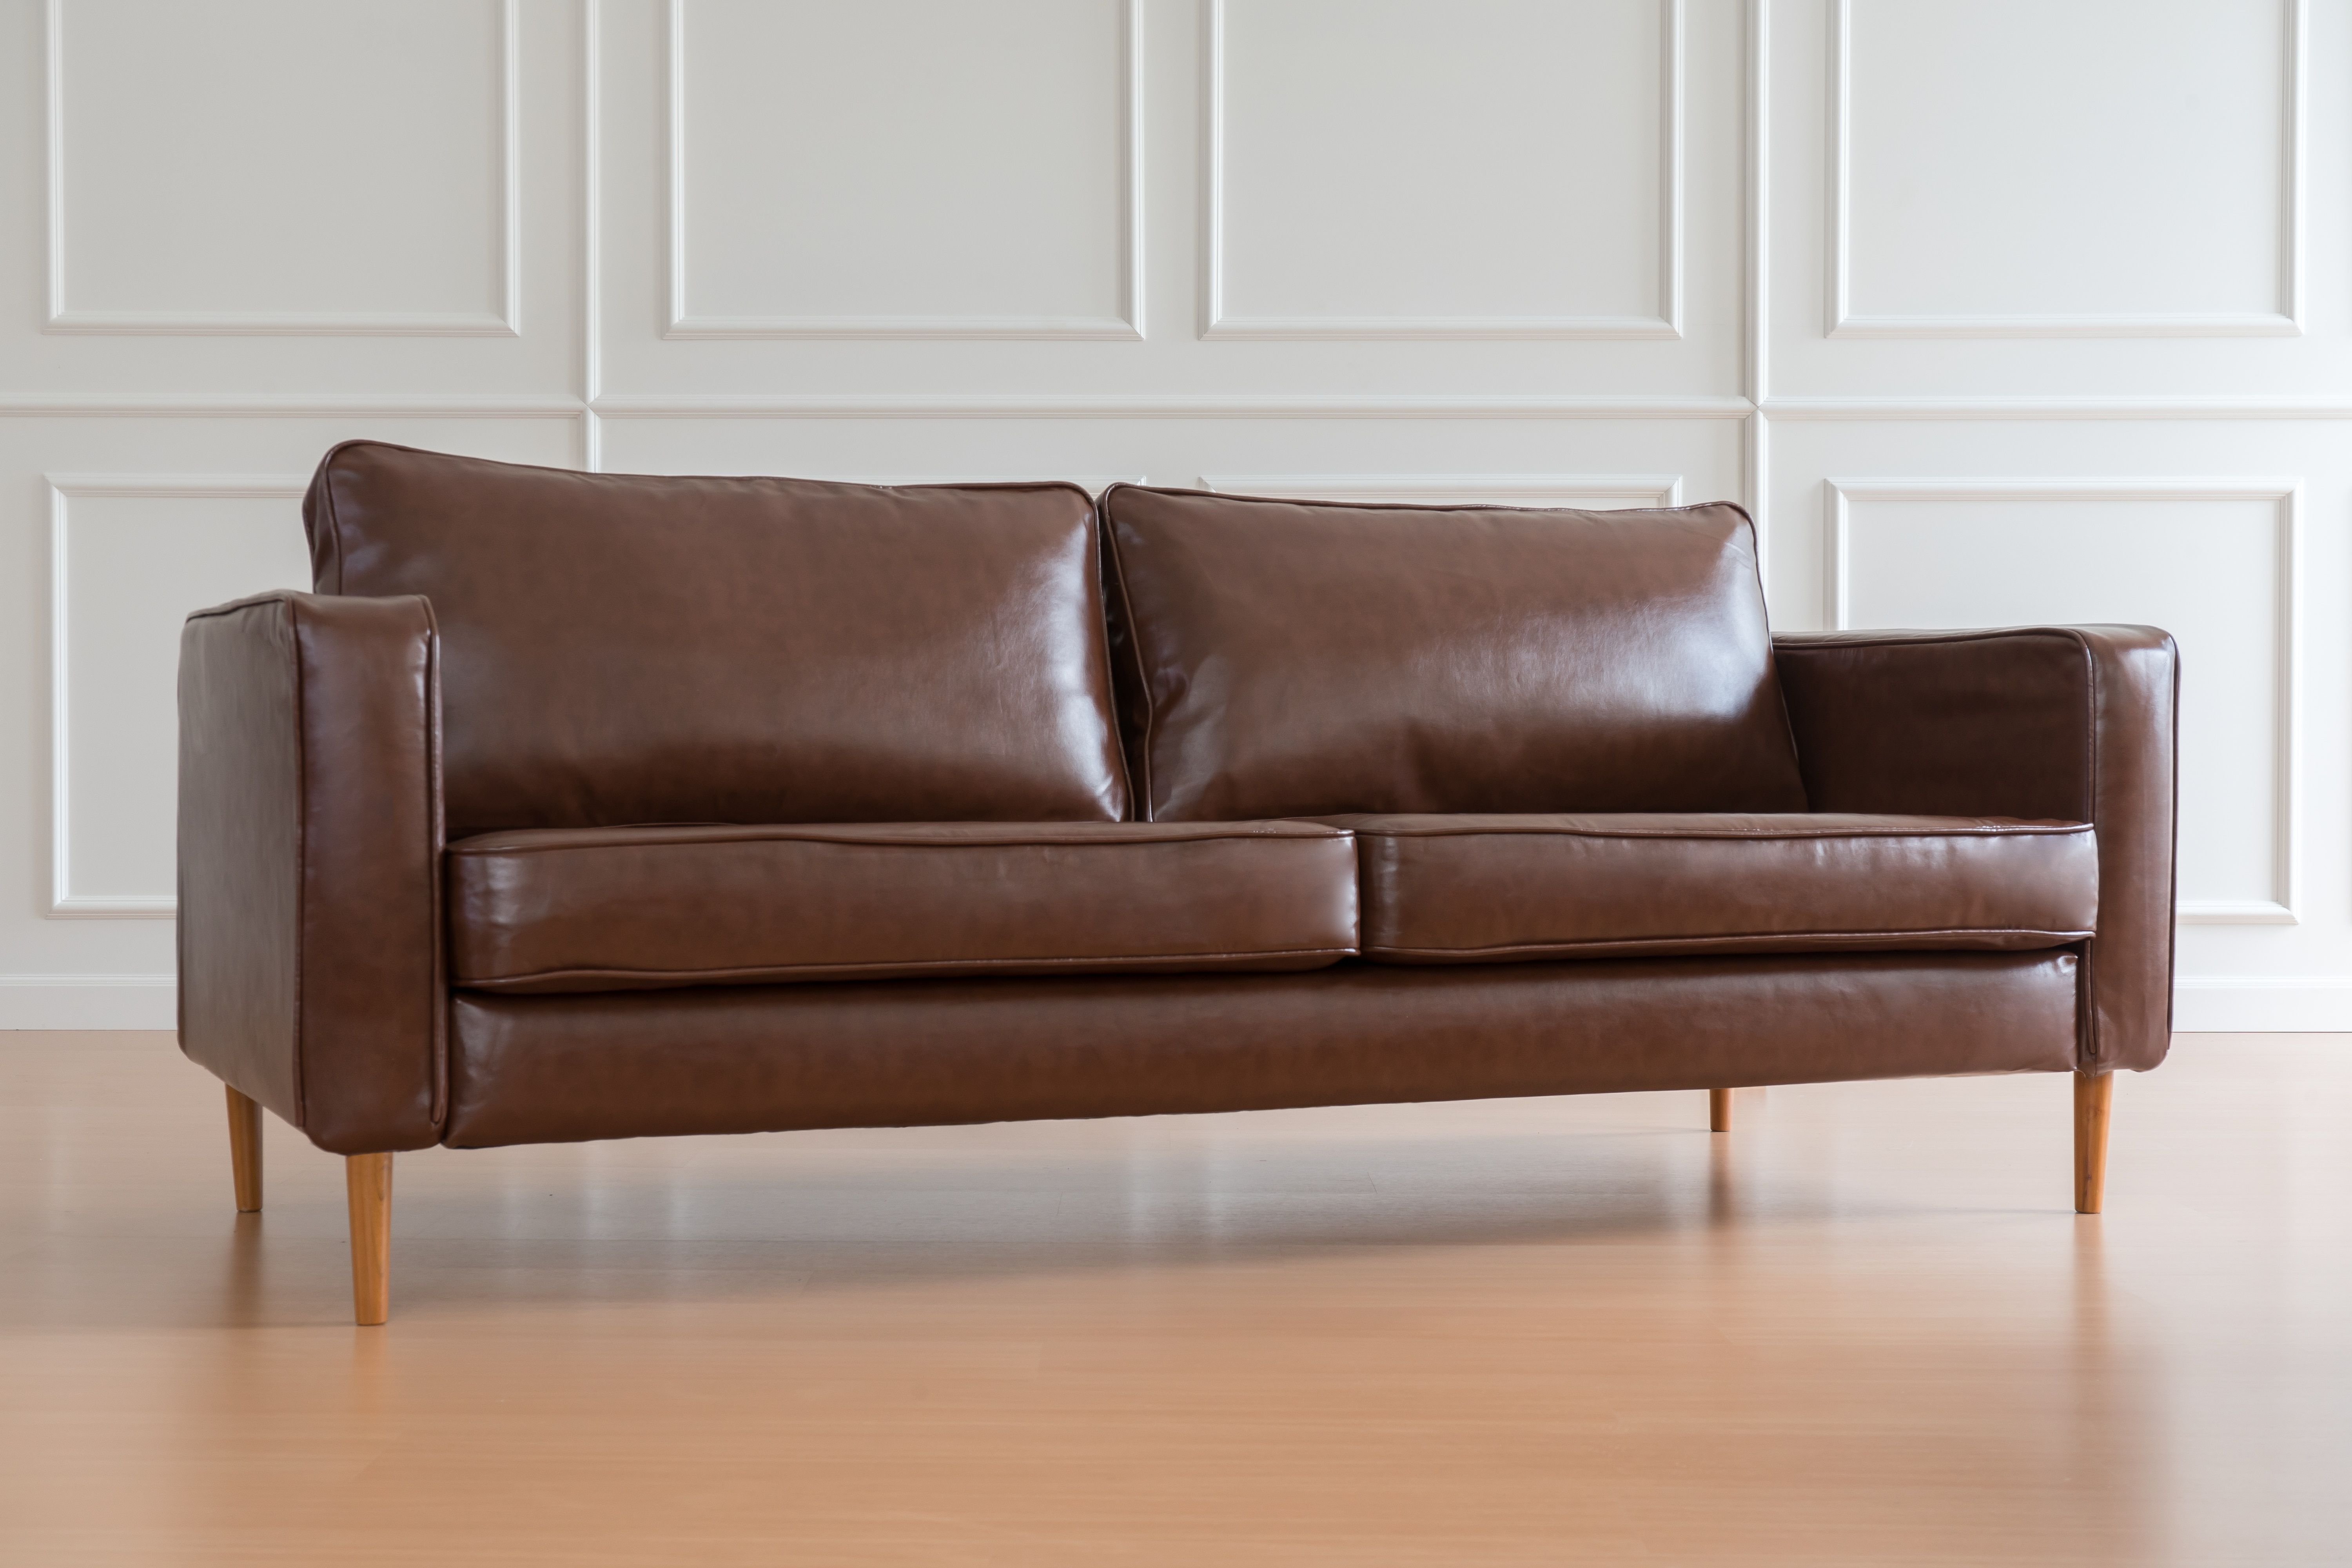 Slipcovers Made Of Leather So Keep Your Old Couch To Give It A New Look Leather Sofa Covers Leather Couch Covers Ikea Karlstad Sofa